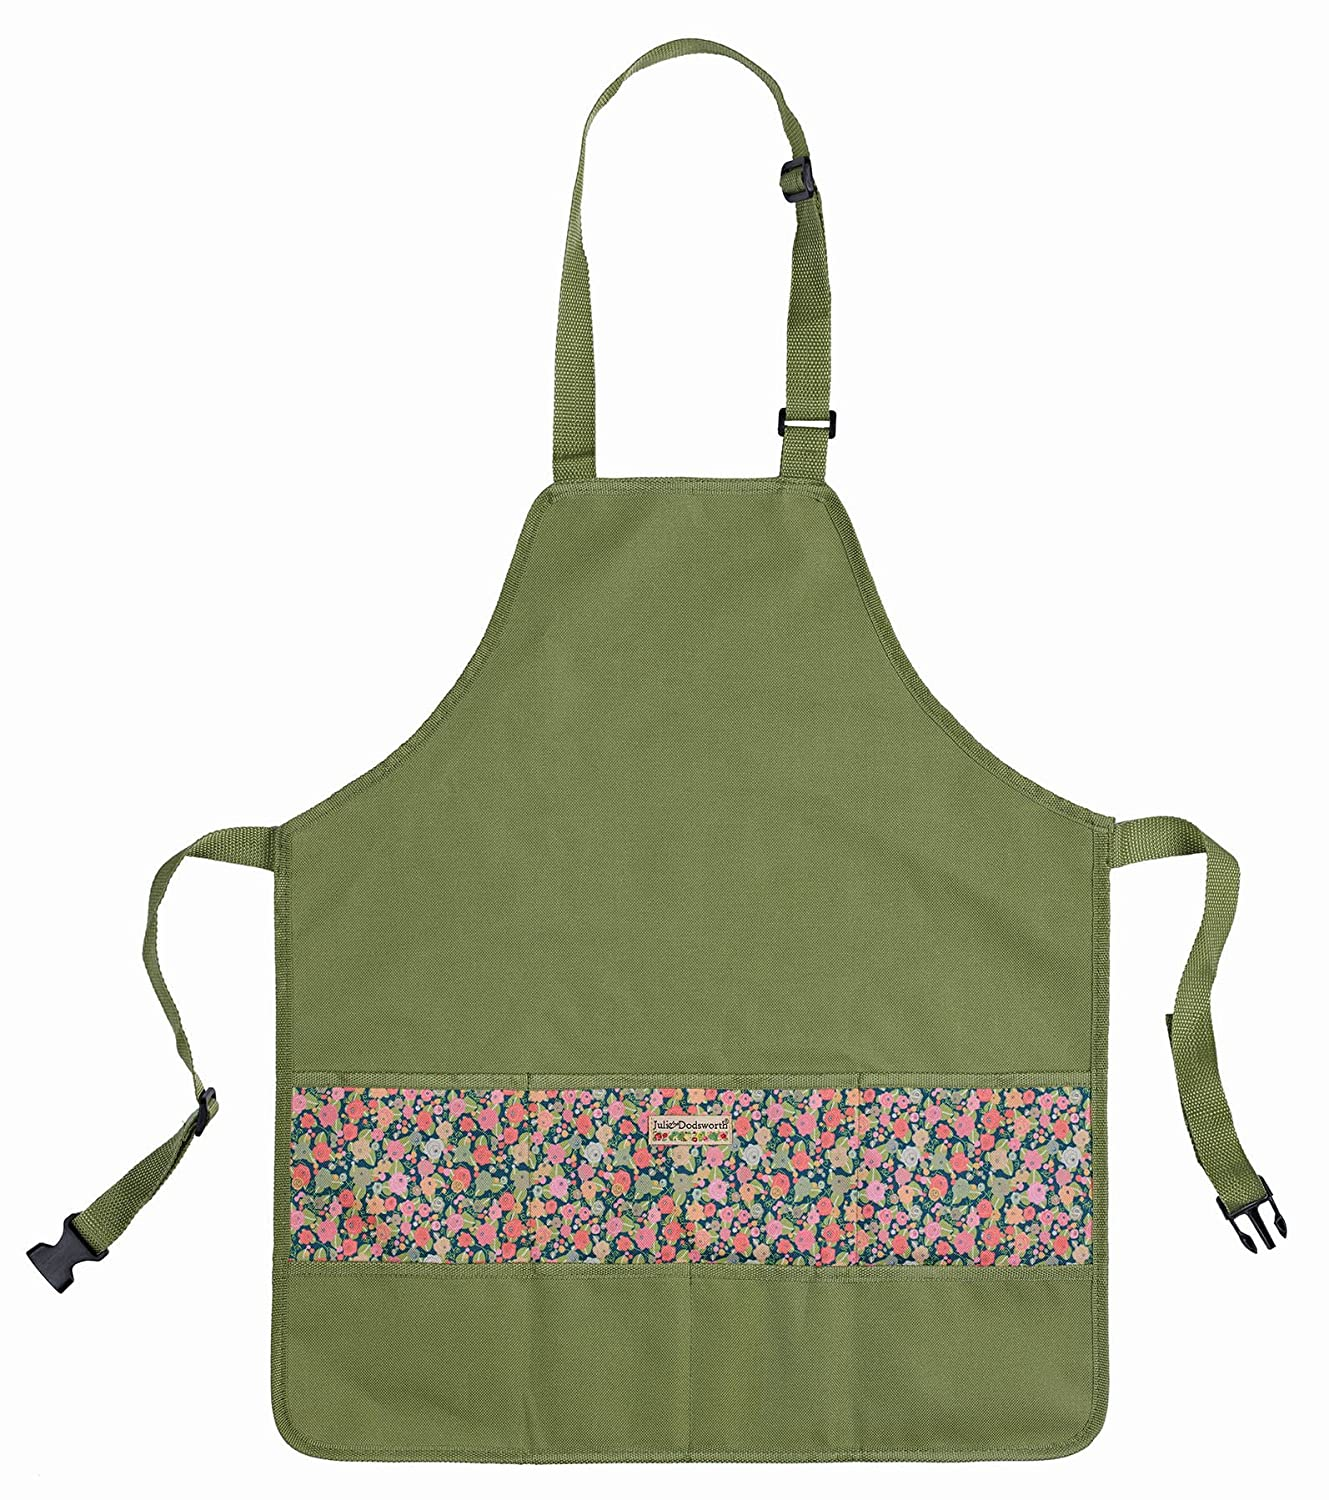 Julie Dodsworth Orangery Apron by Briers Briers Ltd B6993